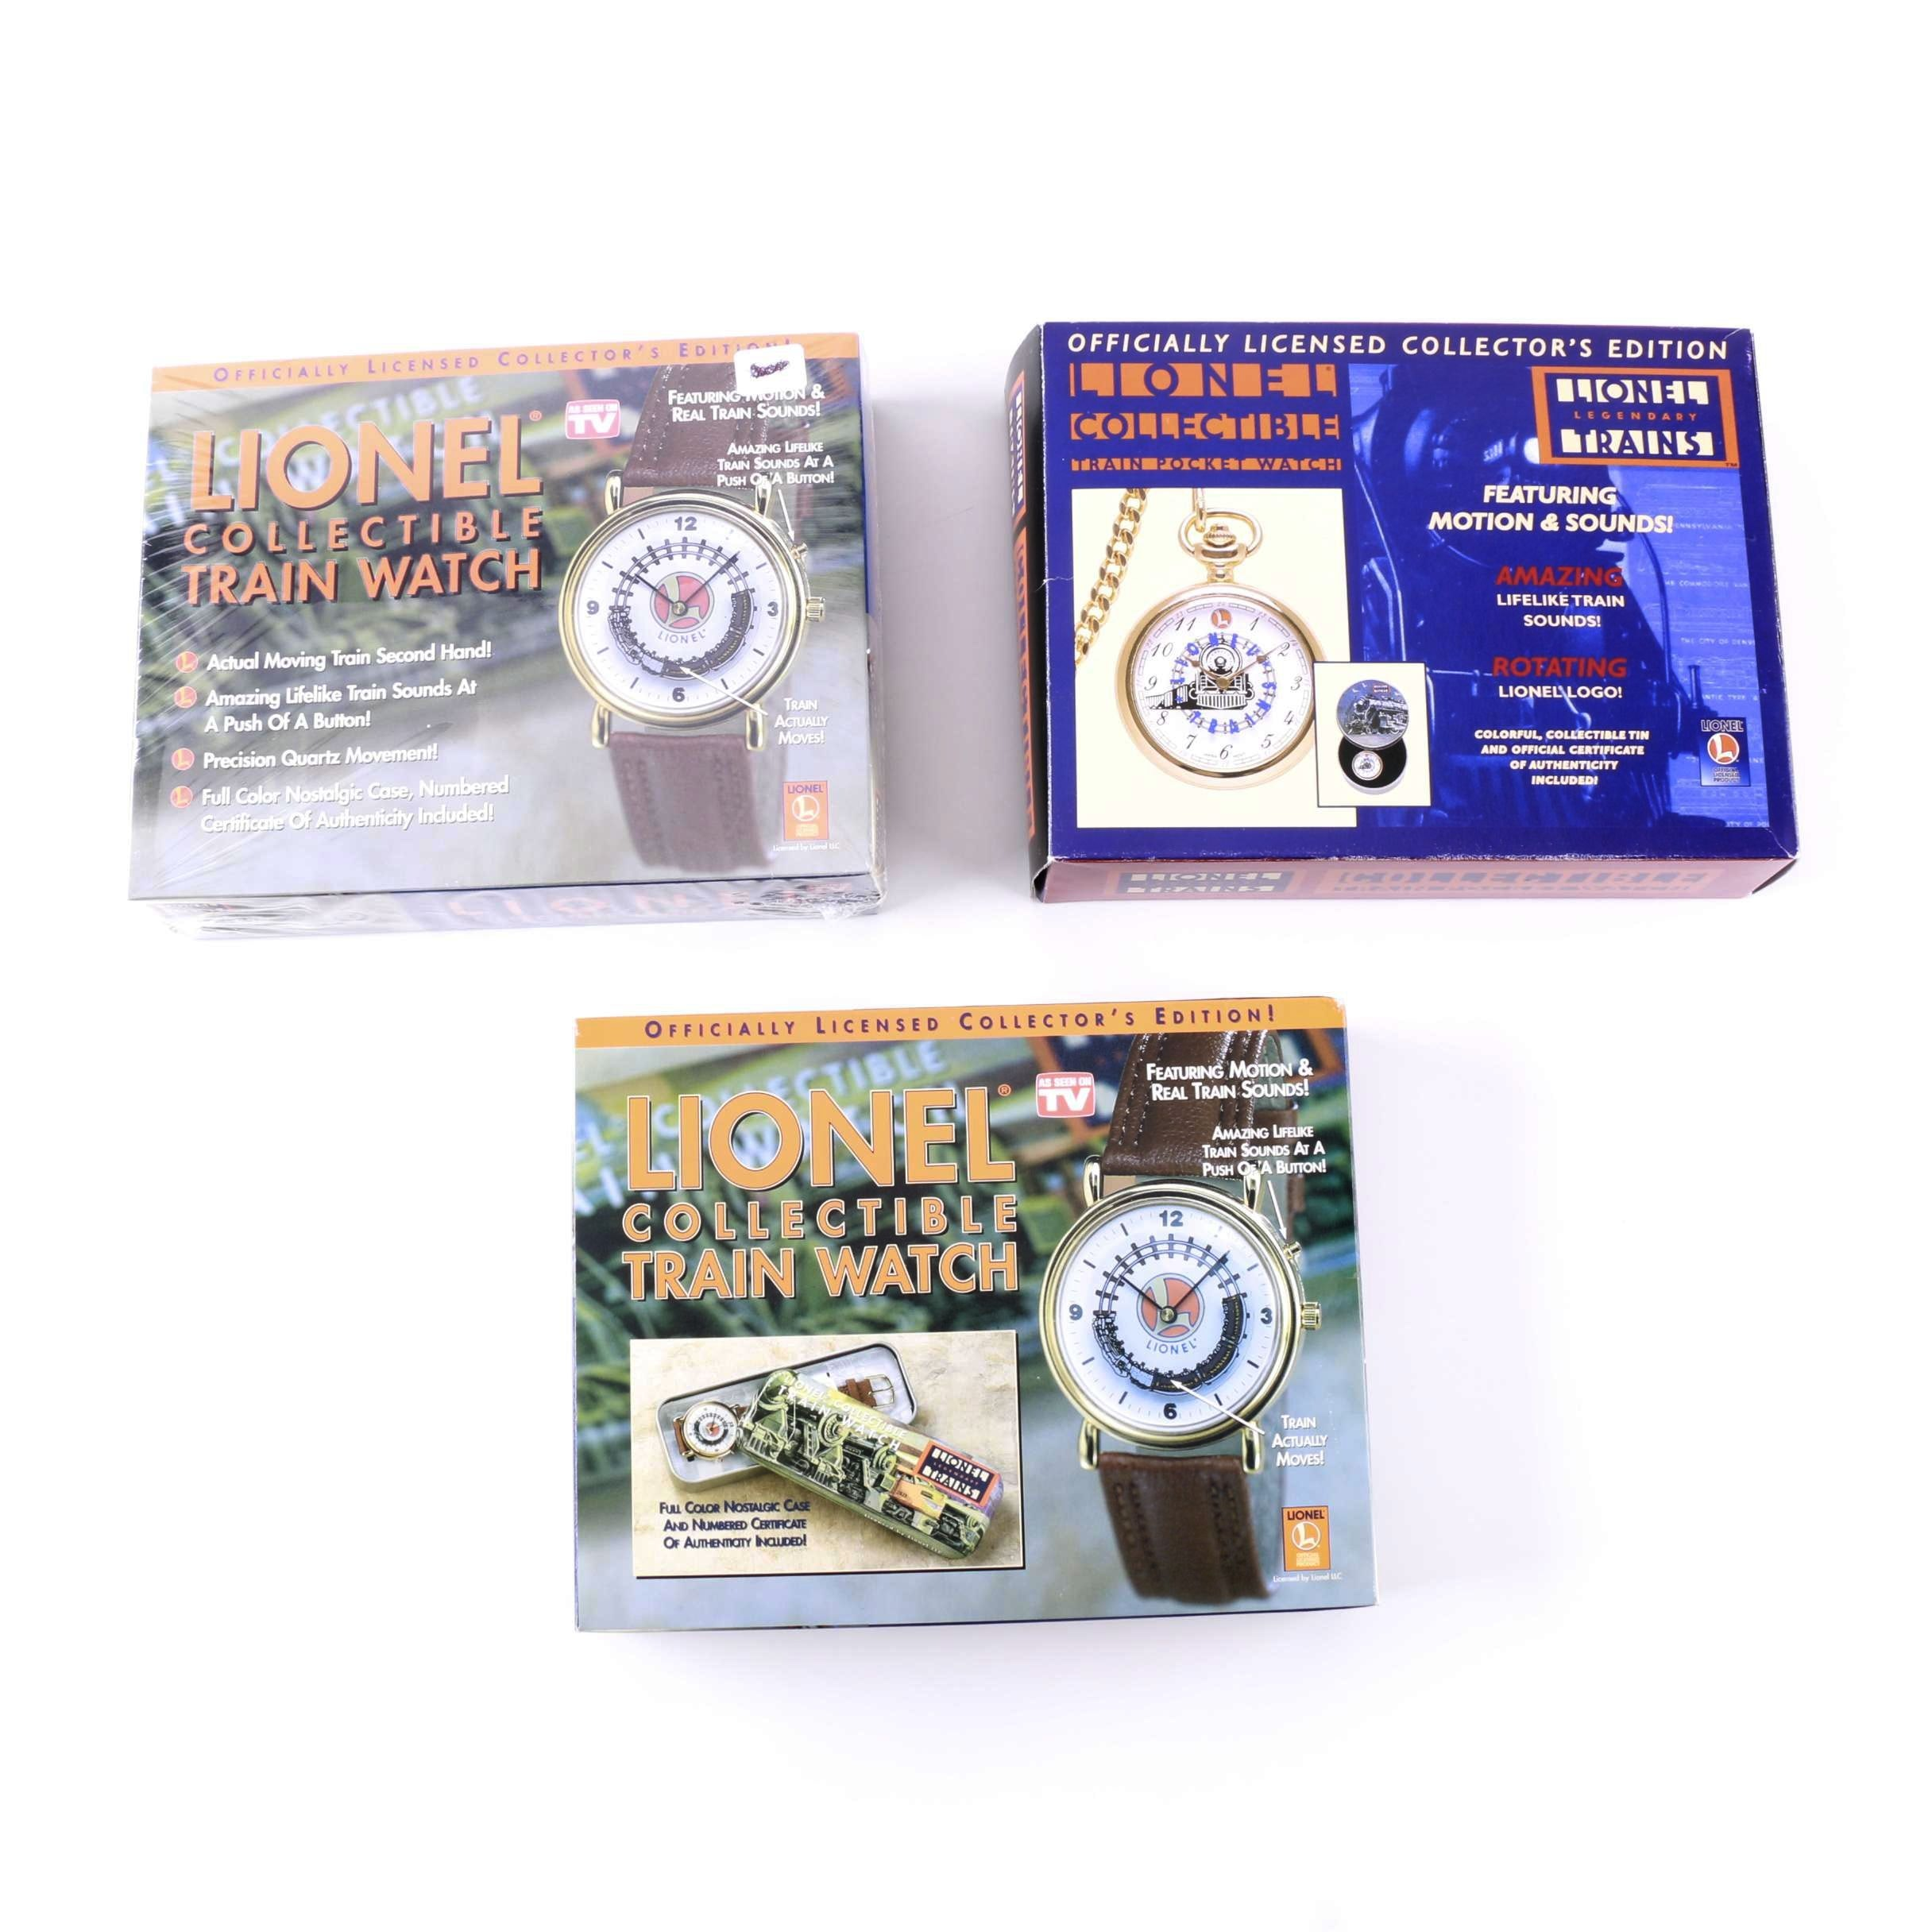 Lionel Collectible Train Watches With Original boxes